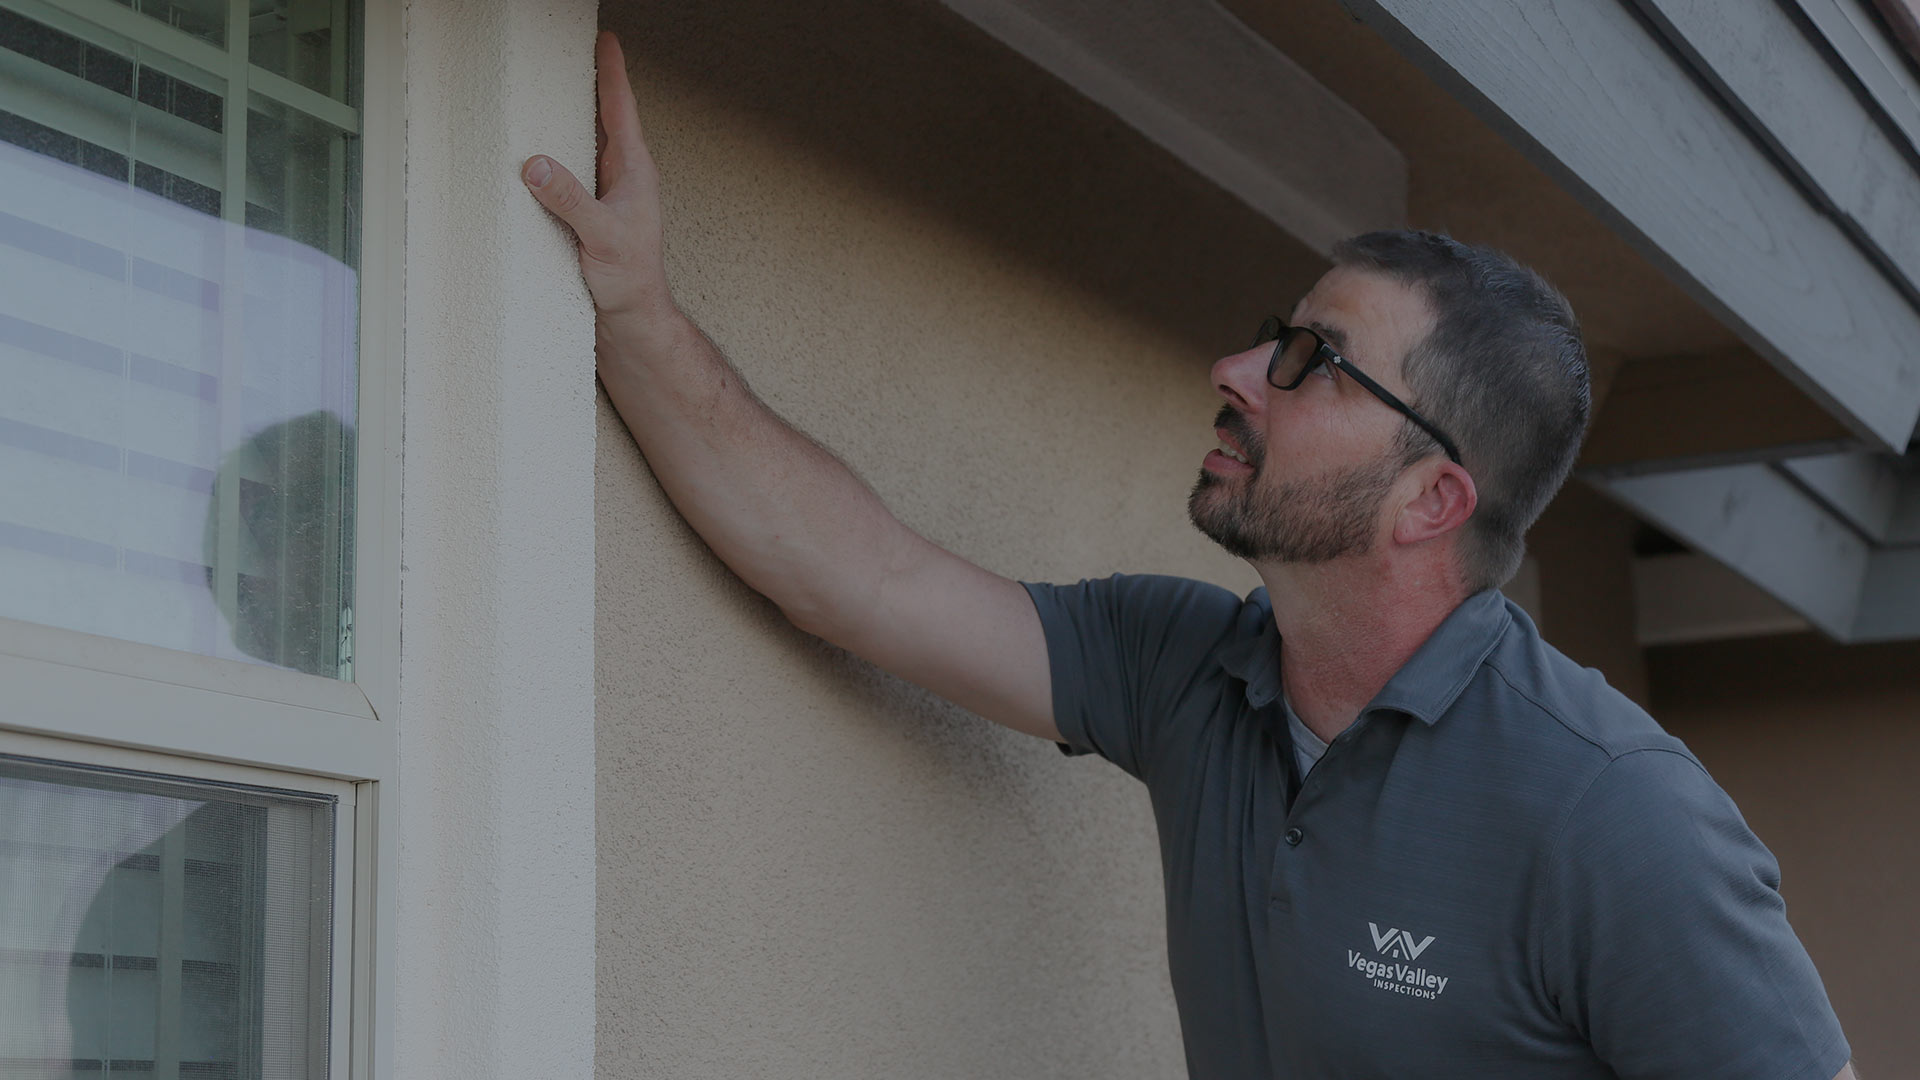 buyers-home-inspections-in-las-vegas-nv-1920px-1080px.jpg